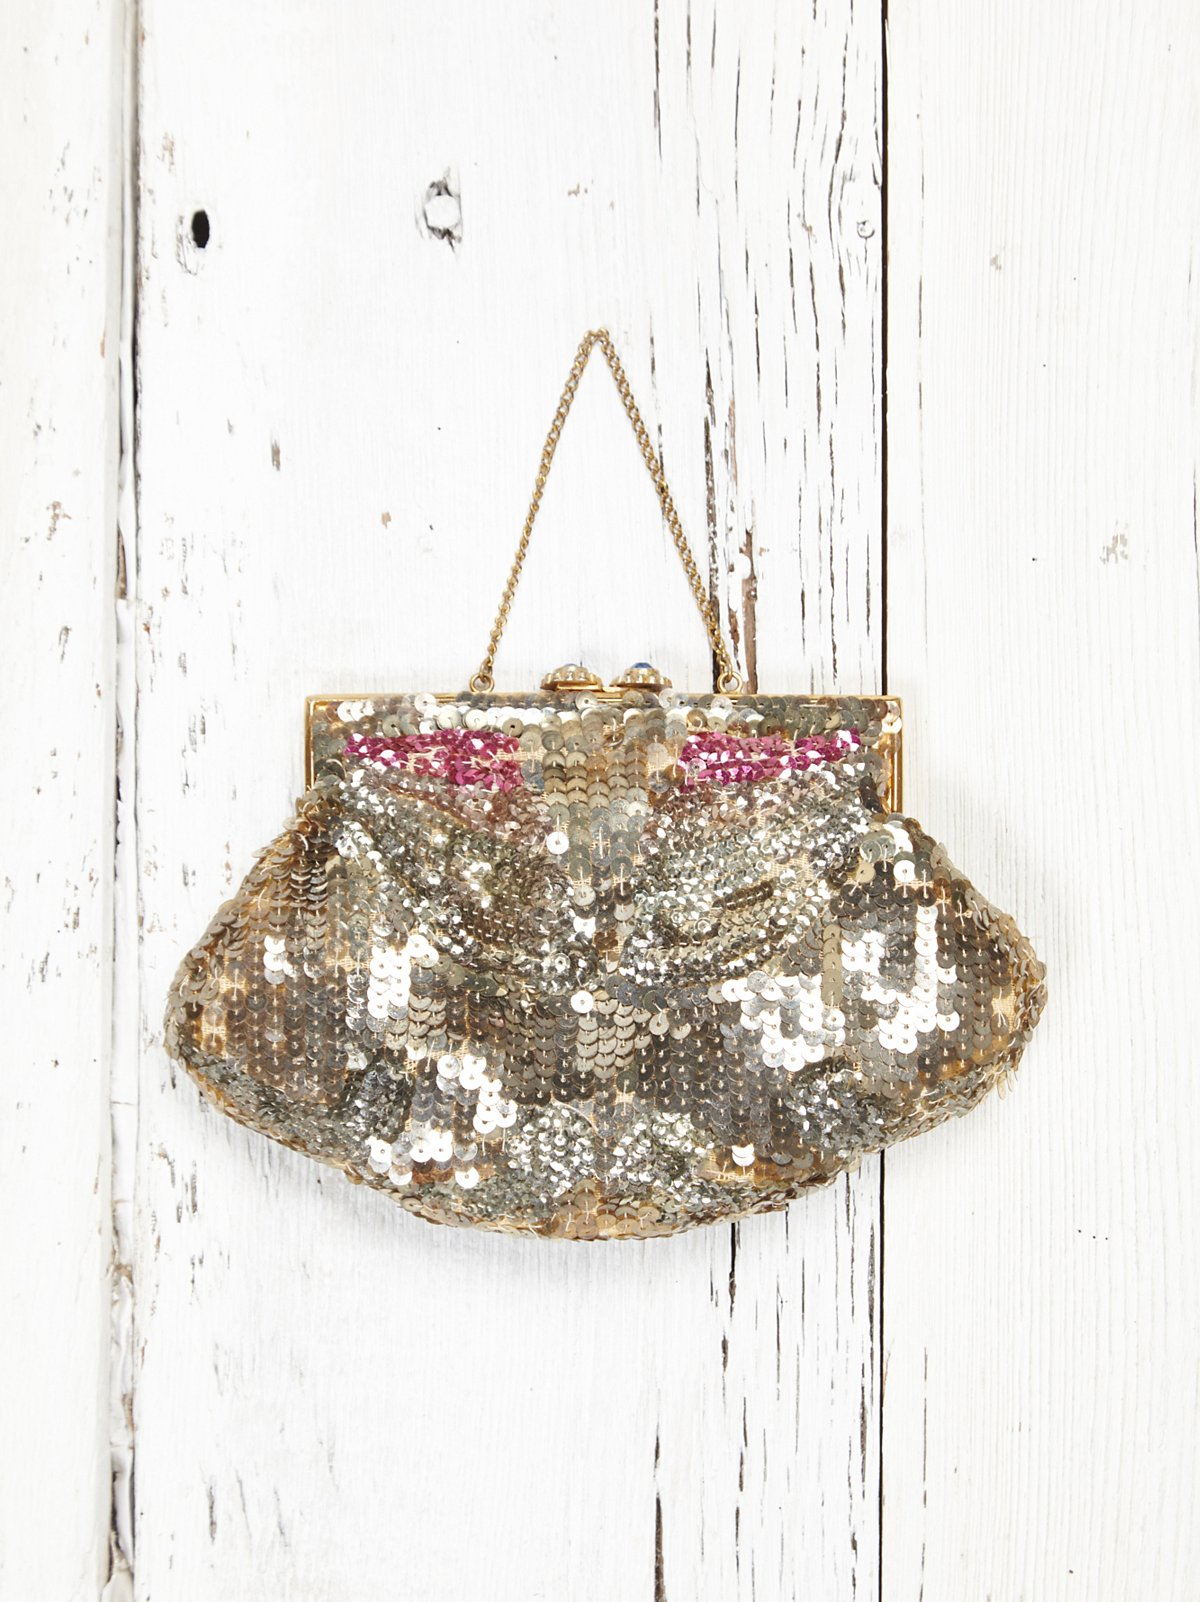 Vintage 1920s Sequin Clutch